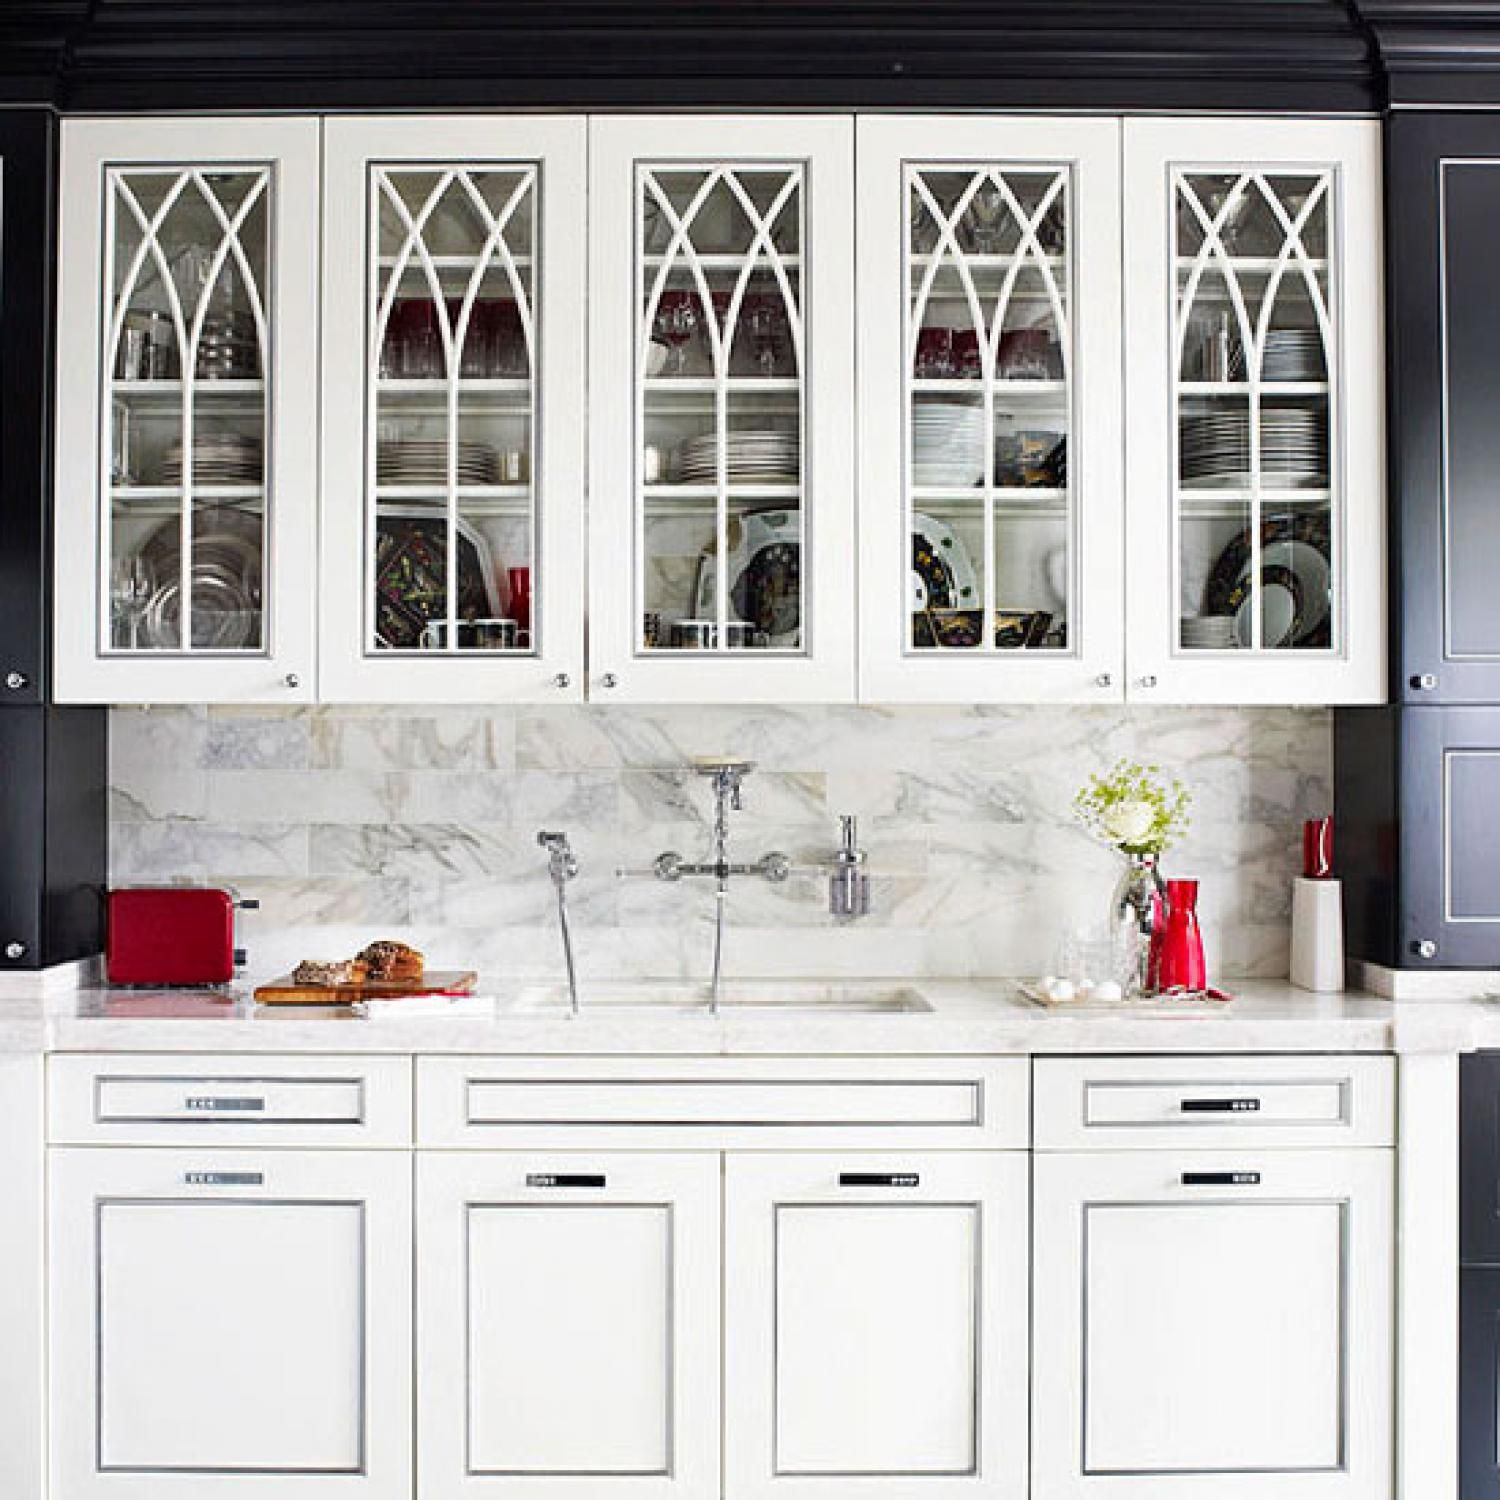 missisauga kichen cabinet glass styles | lowes kitchen cabinet doors fantastic 15 hbe kitchen ...